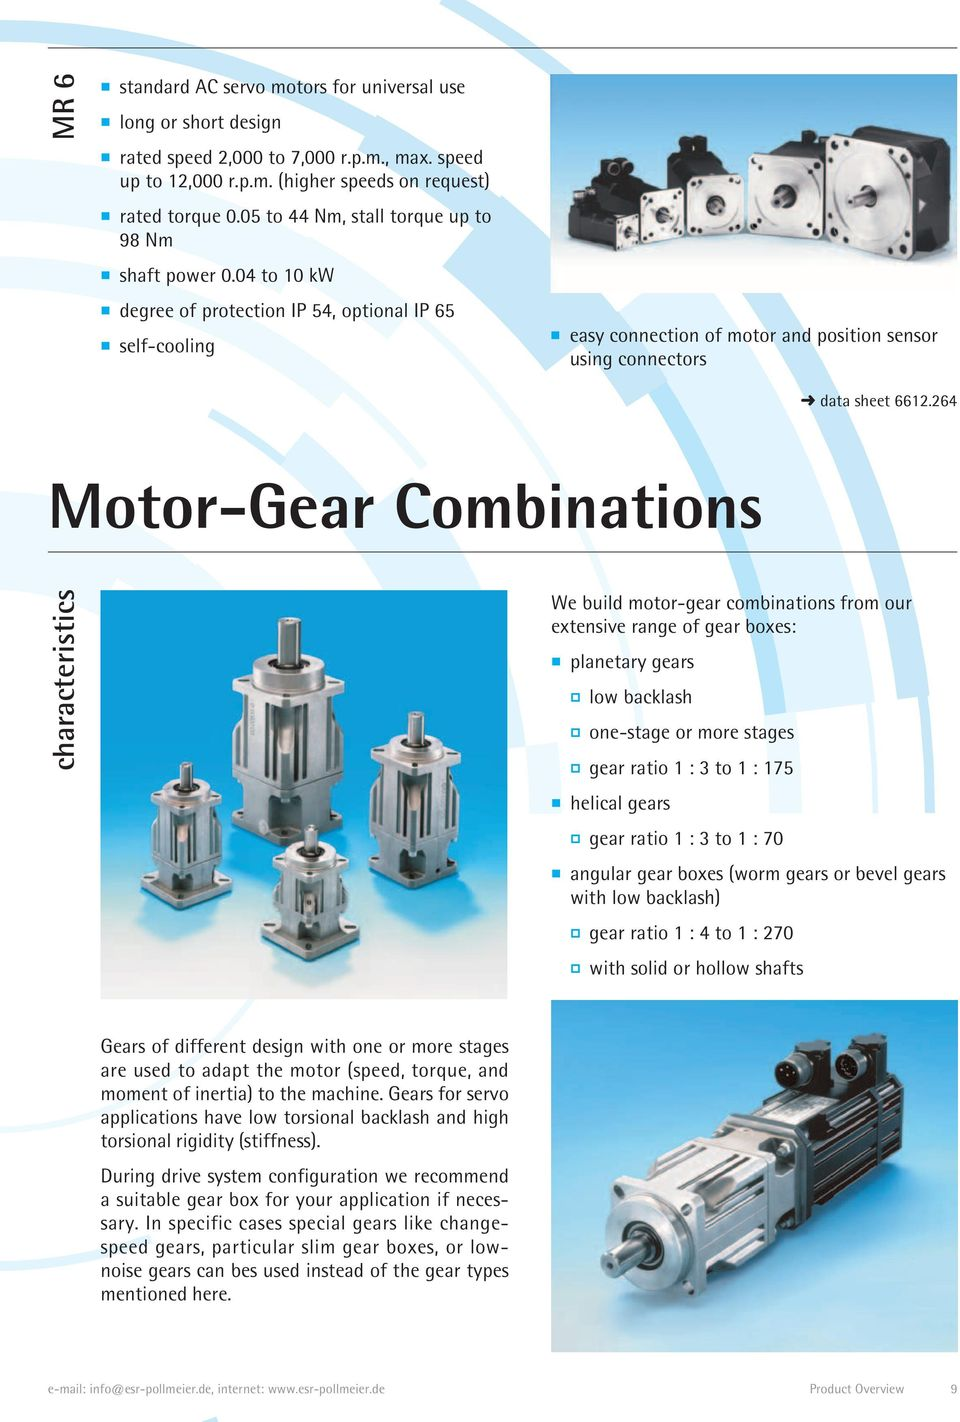 264 Motor-Gear Combinations characteristics We build motor-gear combinations from our extensive range of gear boxes: planetary gears low backlash one-stage or more stages gear ratio 1 : 3 to 1 : 175